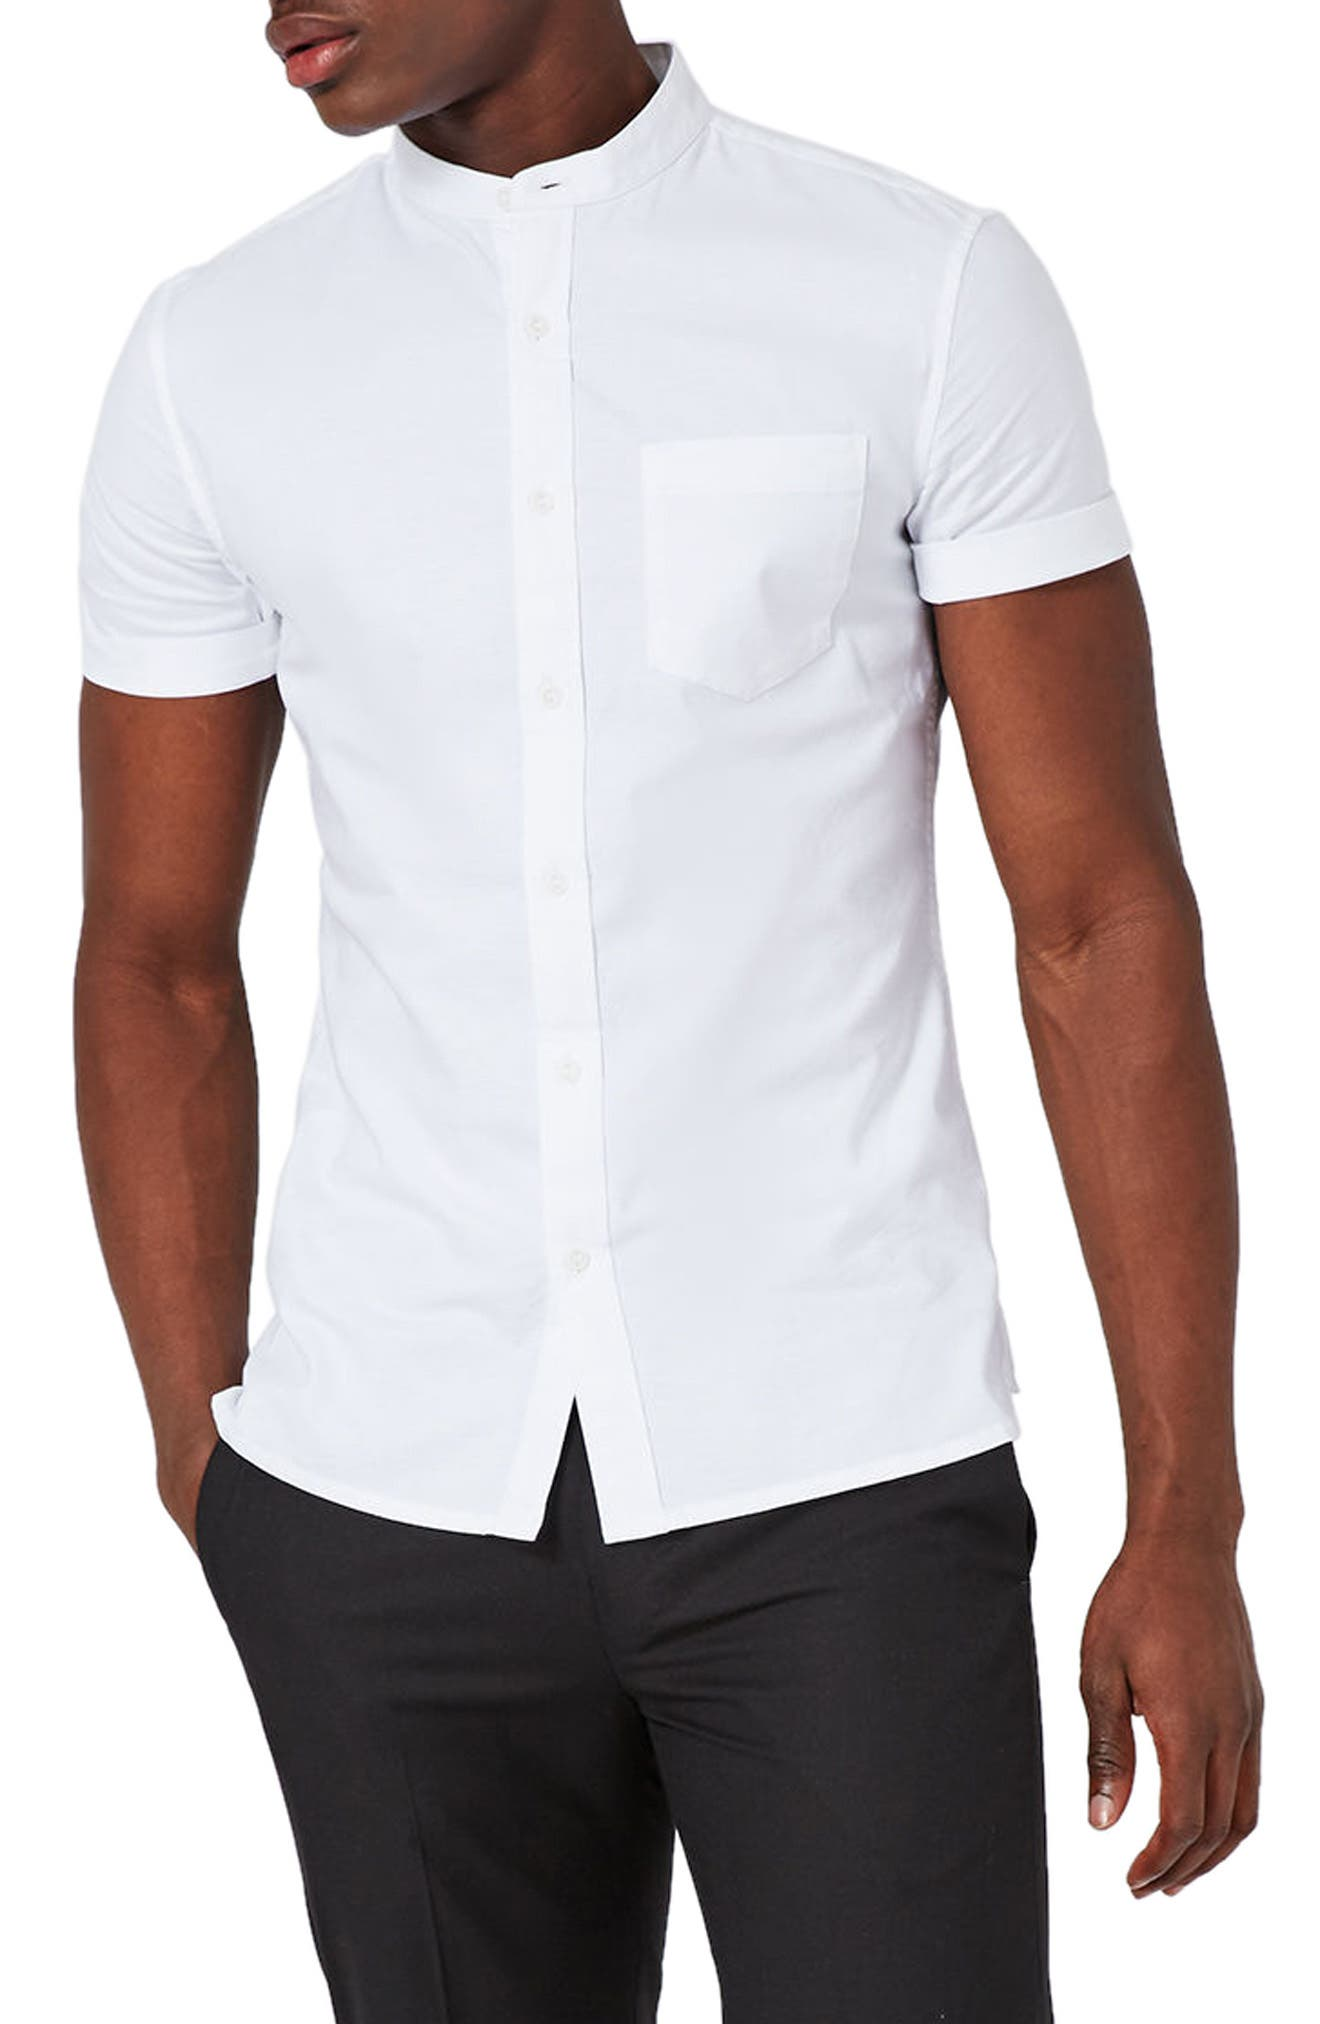 Main Image - Topman Classic Fit Stand Collar Oxford Shirt